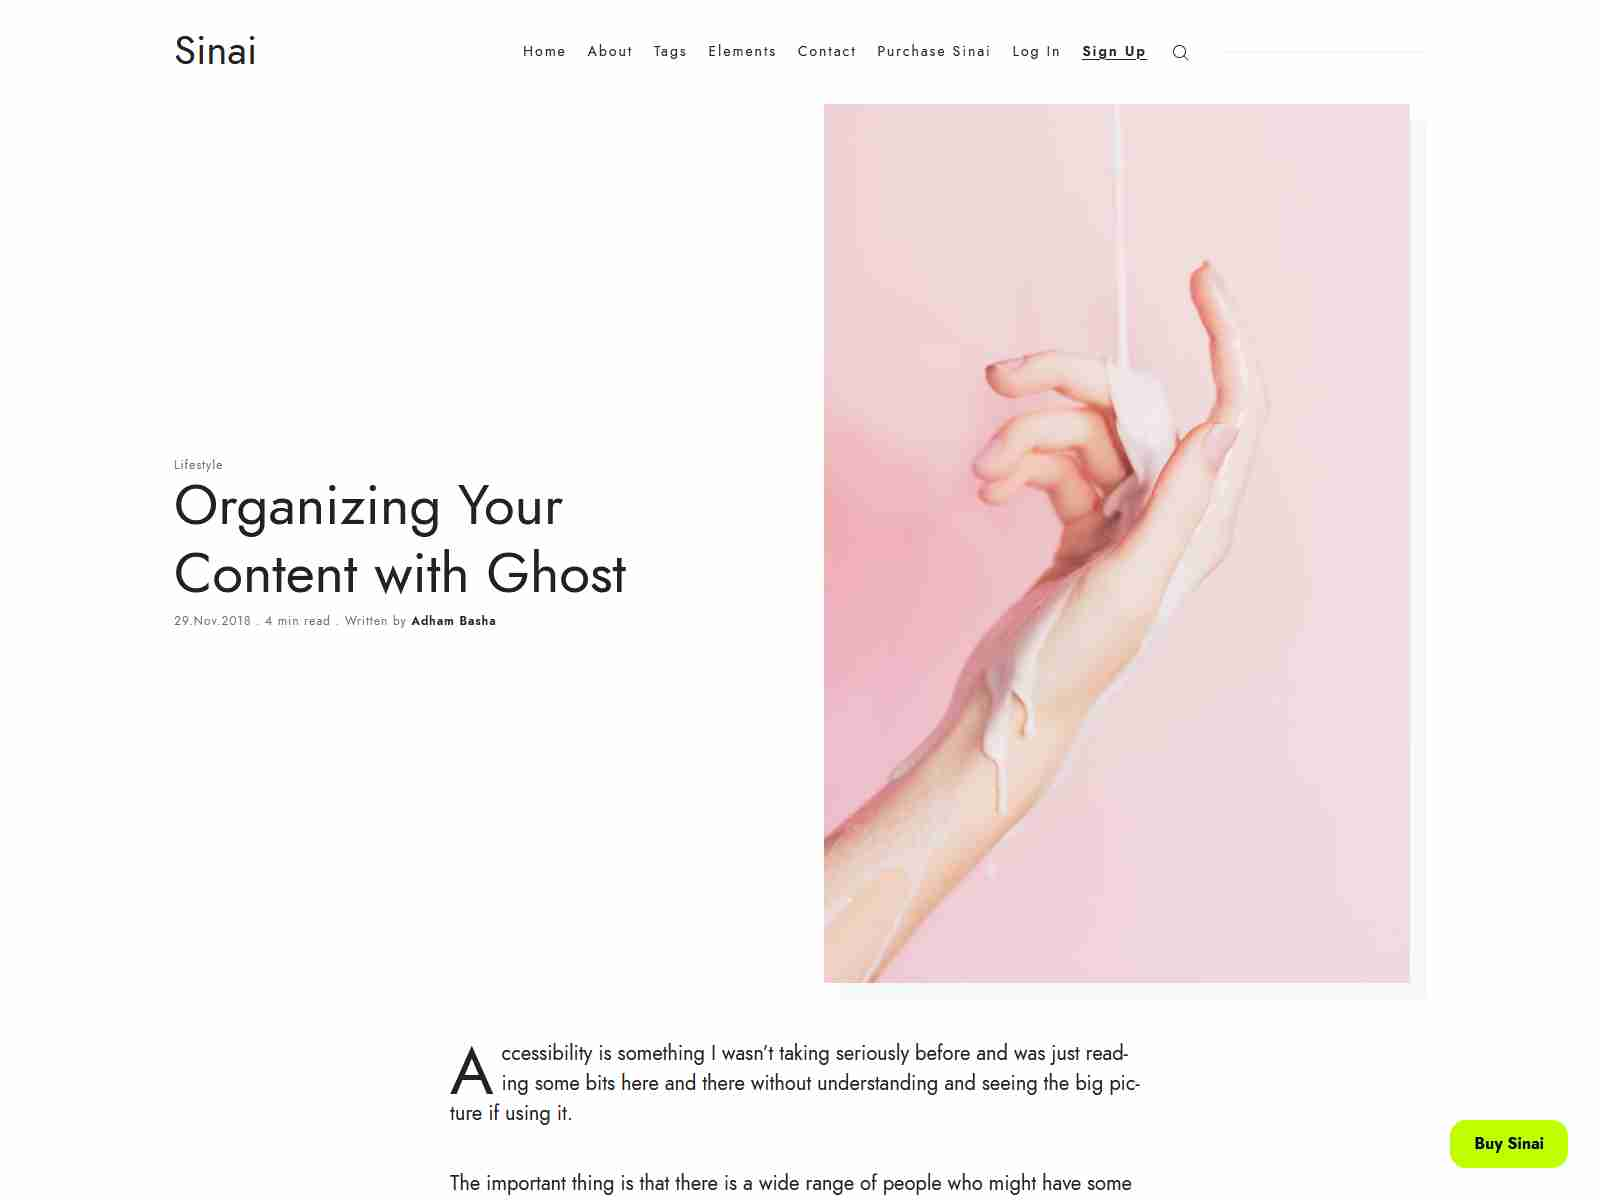 Sinai - Minimal Blog and Magazine Ghost 3.0 Theme